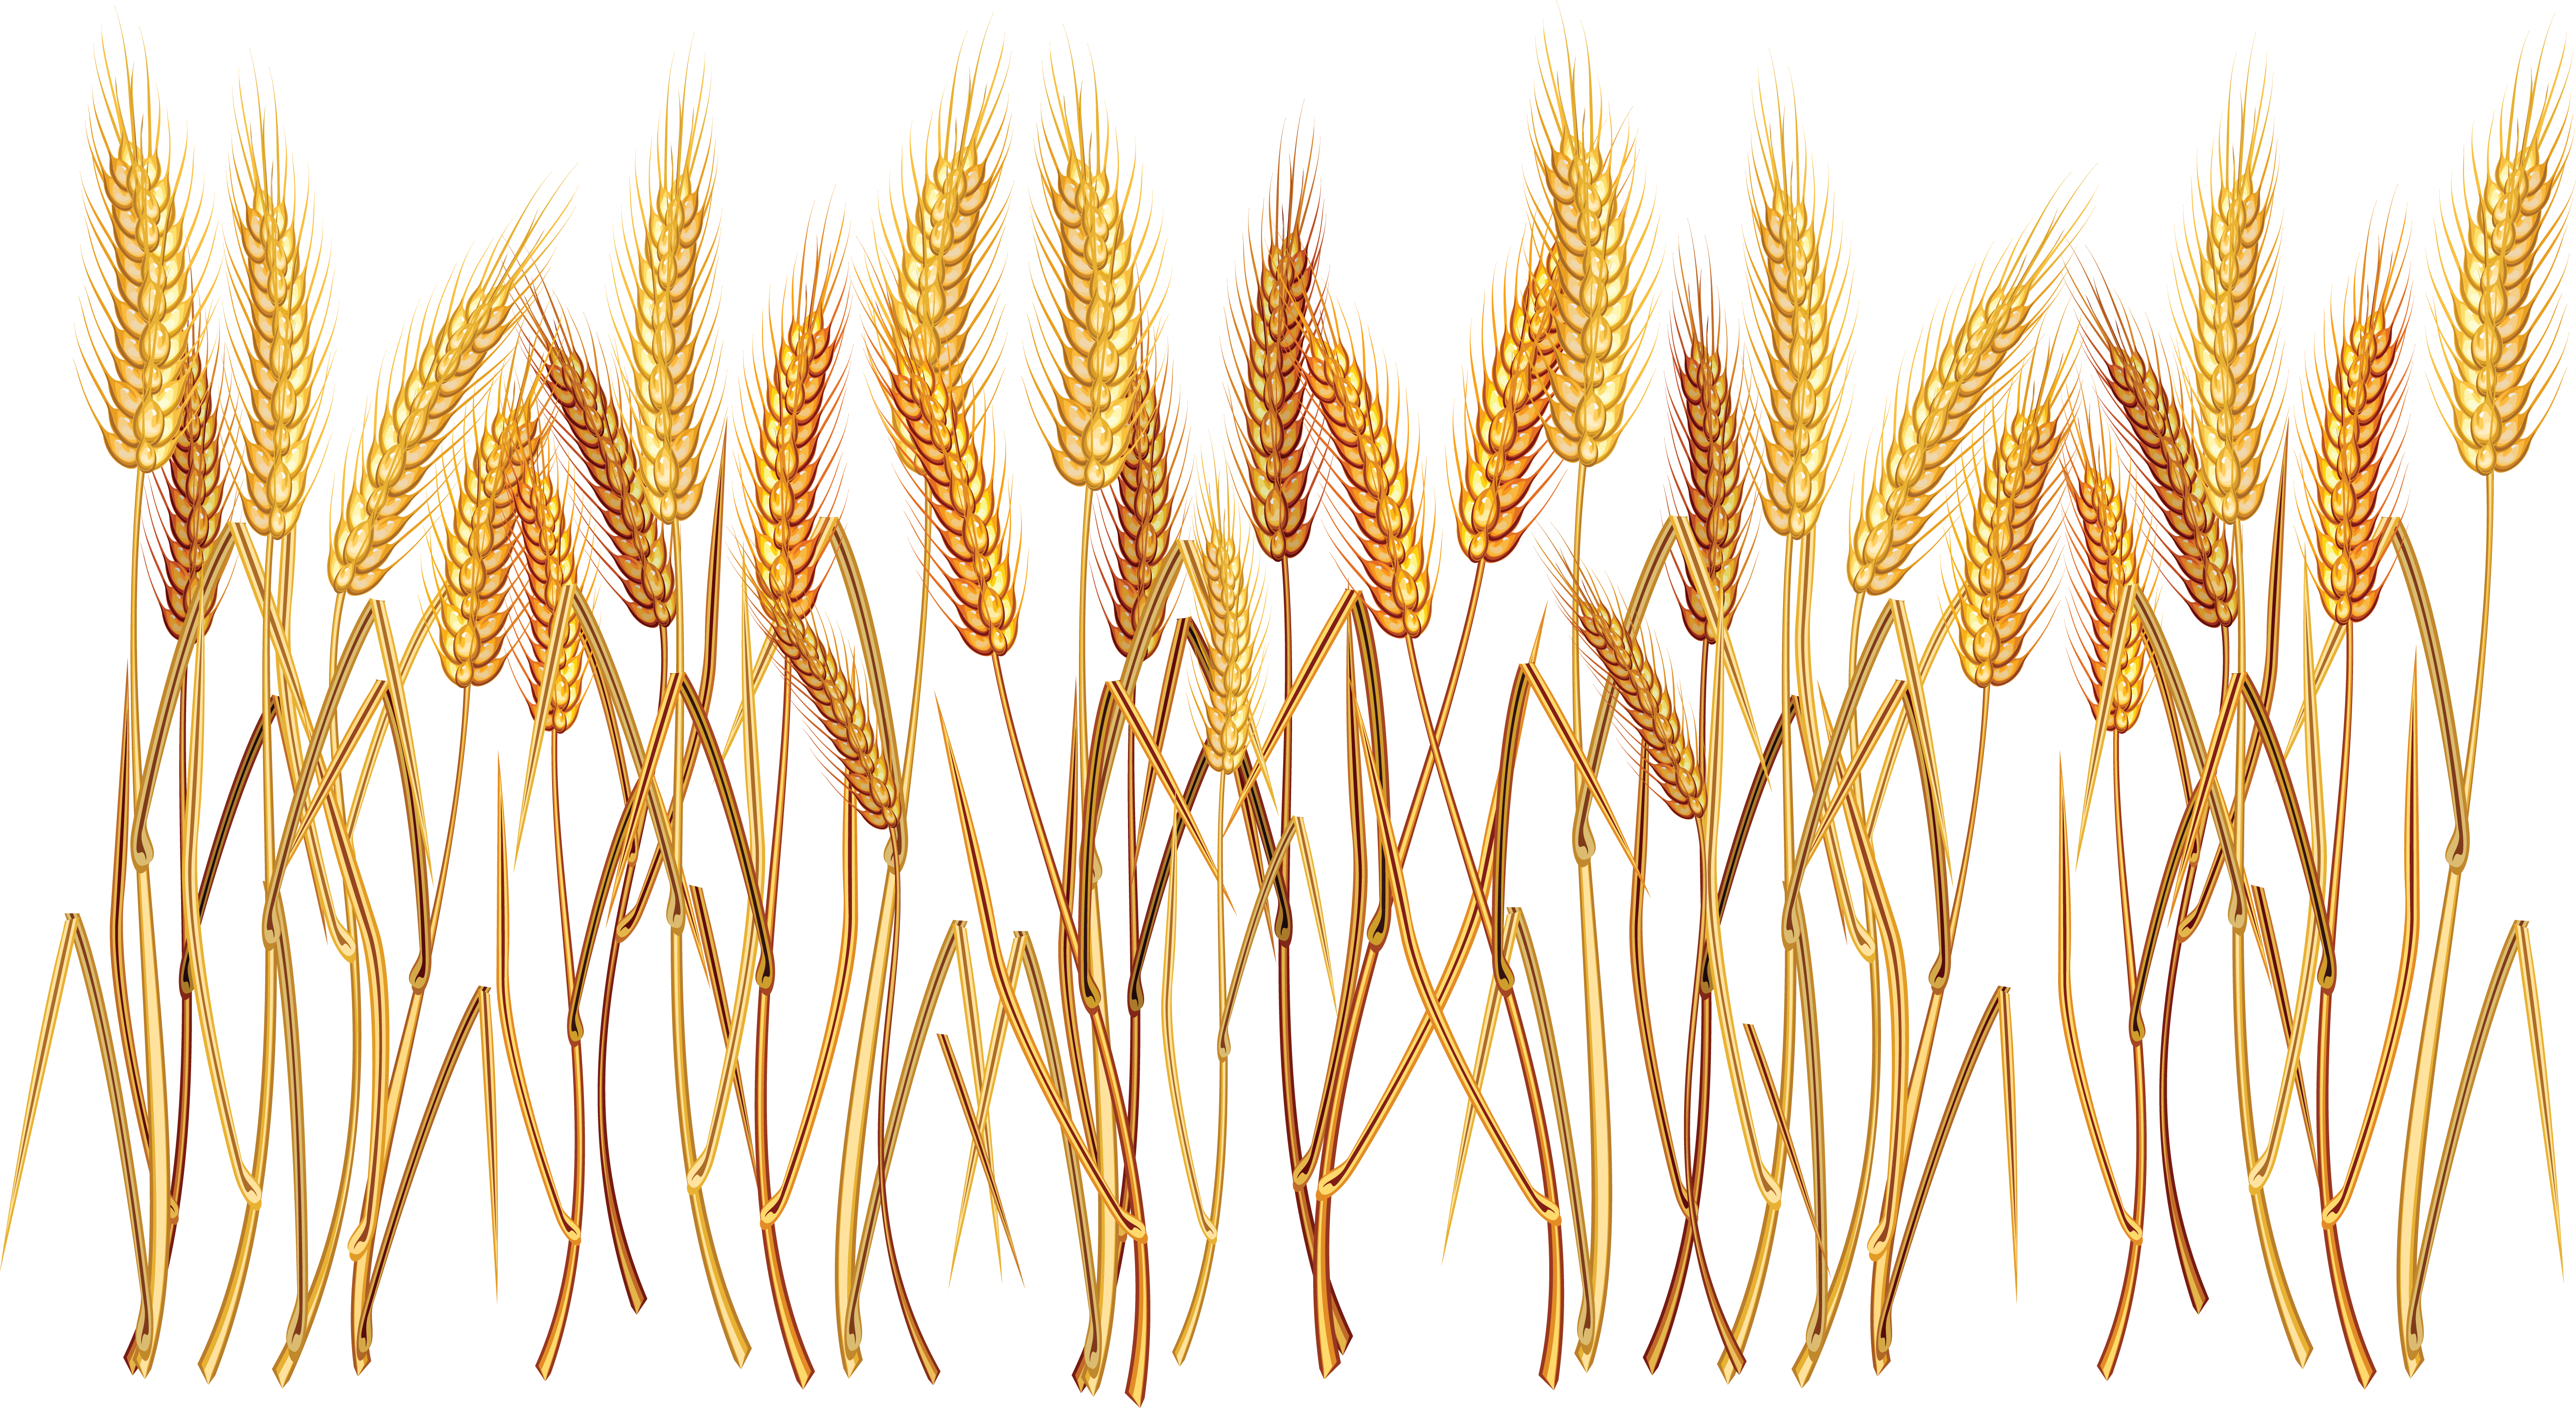 banner stock Grains clipart wheat plant. Png images free download